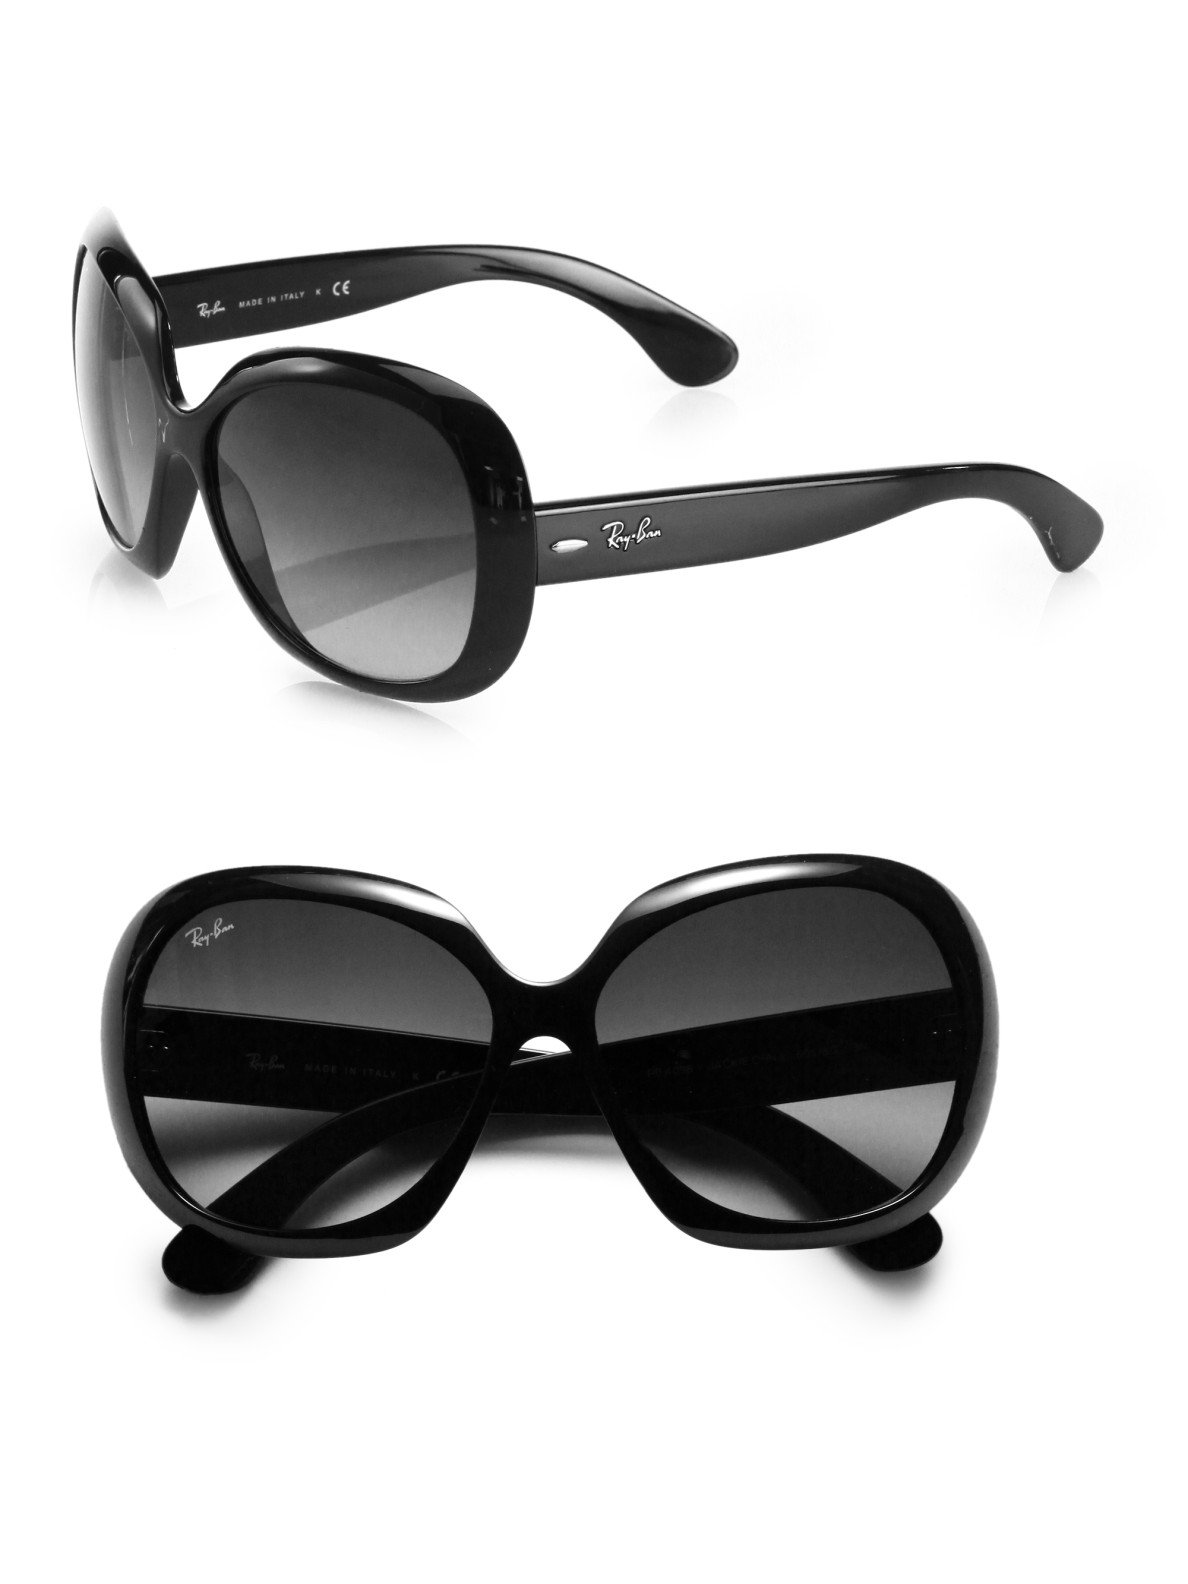 3208821ebc Ray-Ban Rb4098 Jackie Ohh Oversized Round Sunglasses in Black - Lyst